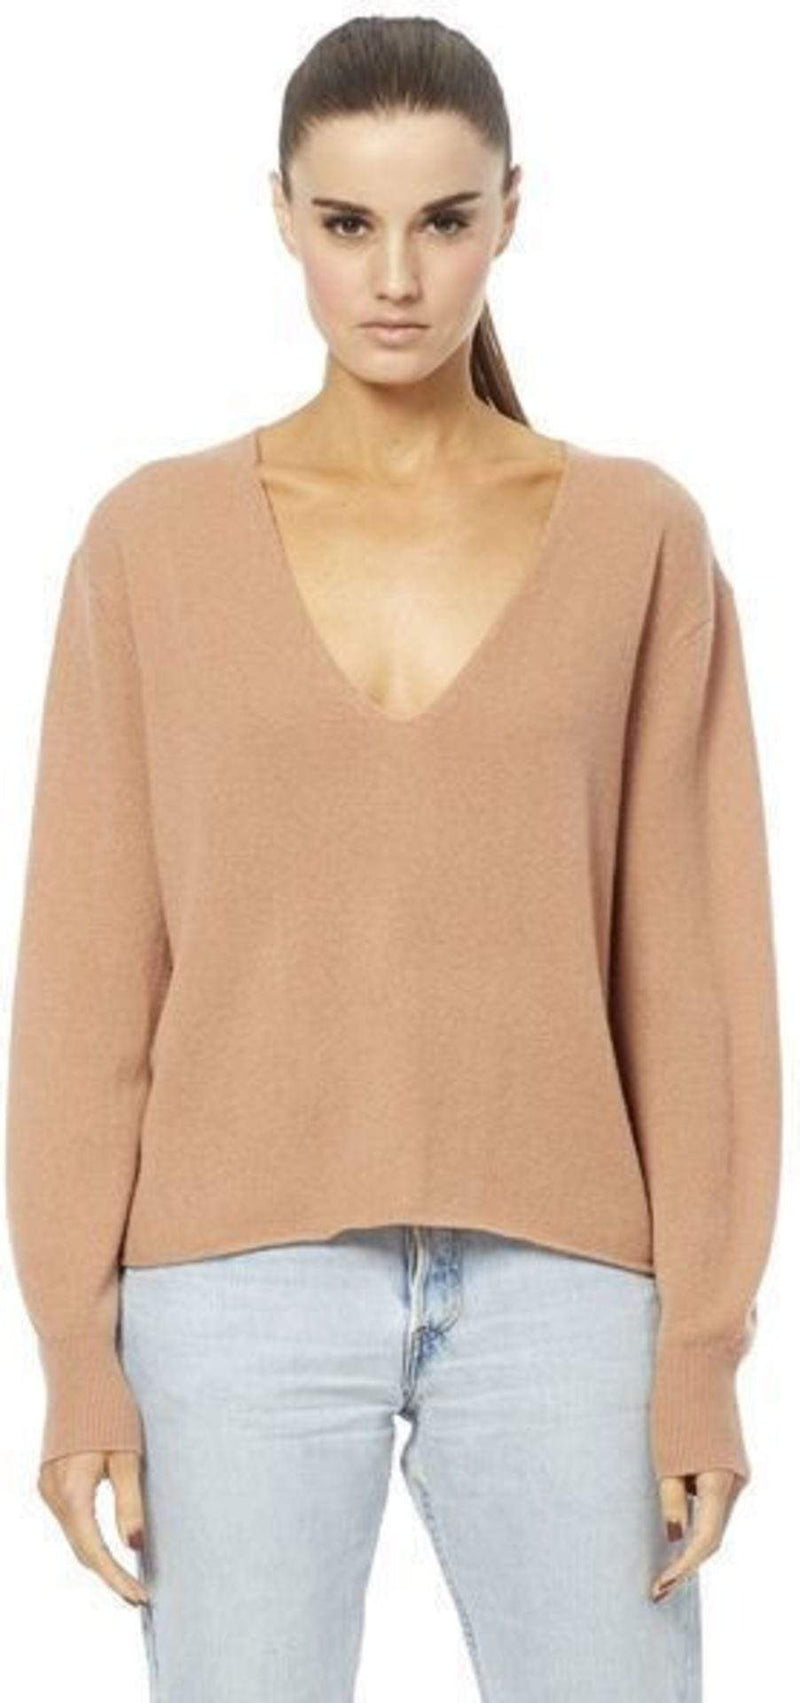 360 Cashmere/Skull Cashmere Sweater Small / Nutmeg / 37122Nutmeg Maddison V-Neck Sweater Nutmeg